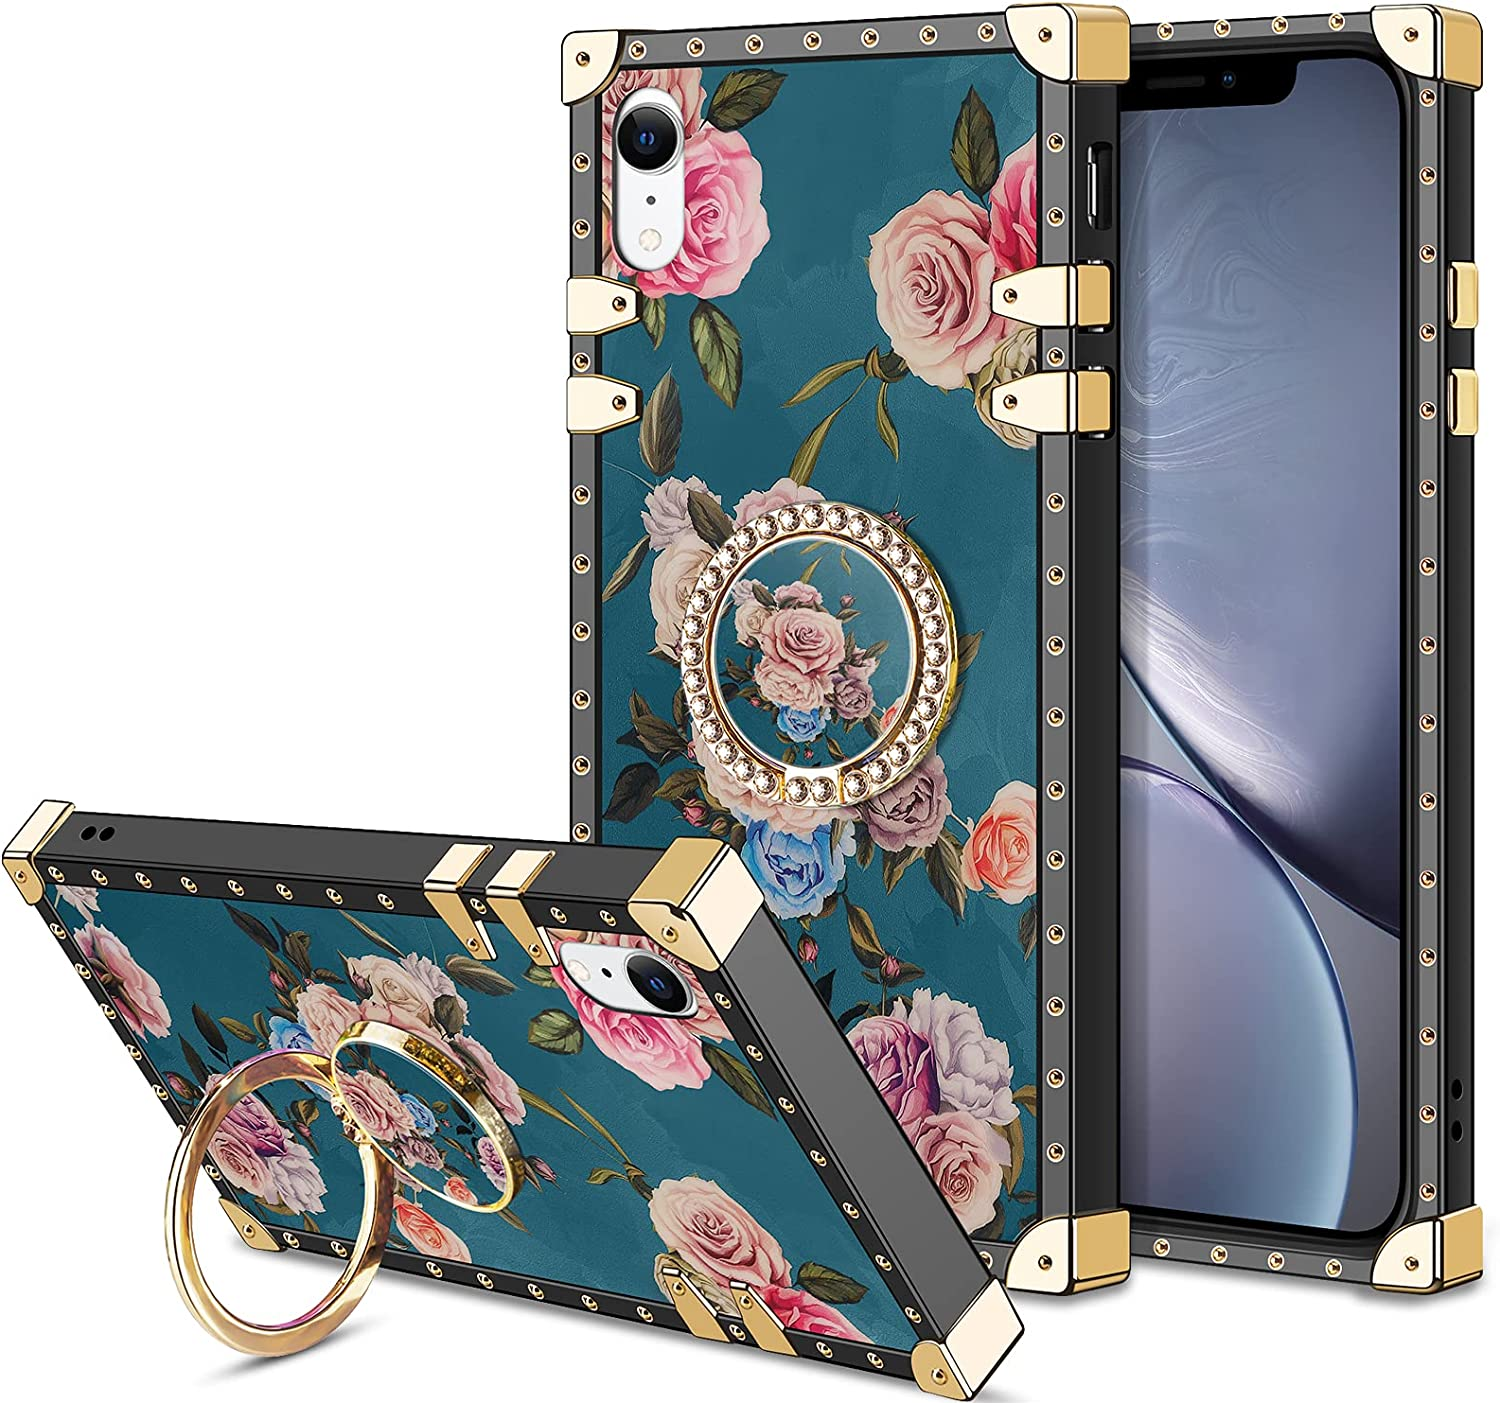 HoneyAKE Phone Case for iPhone XR Case with Kickstand Women Girls Soft TPU Shockproof Protective Heavy Duty Metal Cushion Reinforced Corner Case Bumper Compatible with Apple iPhone XR 6.1 inch, Peony